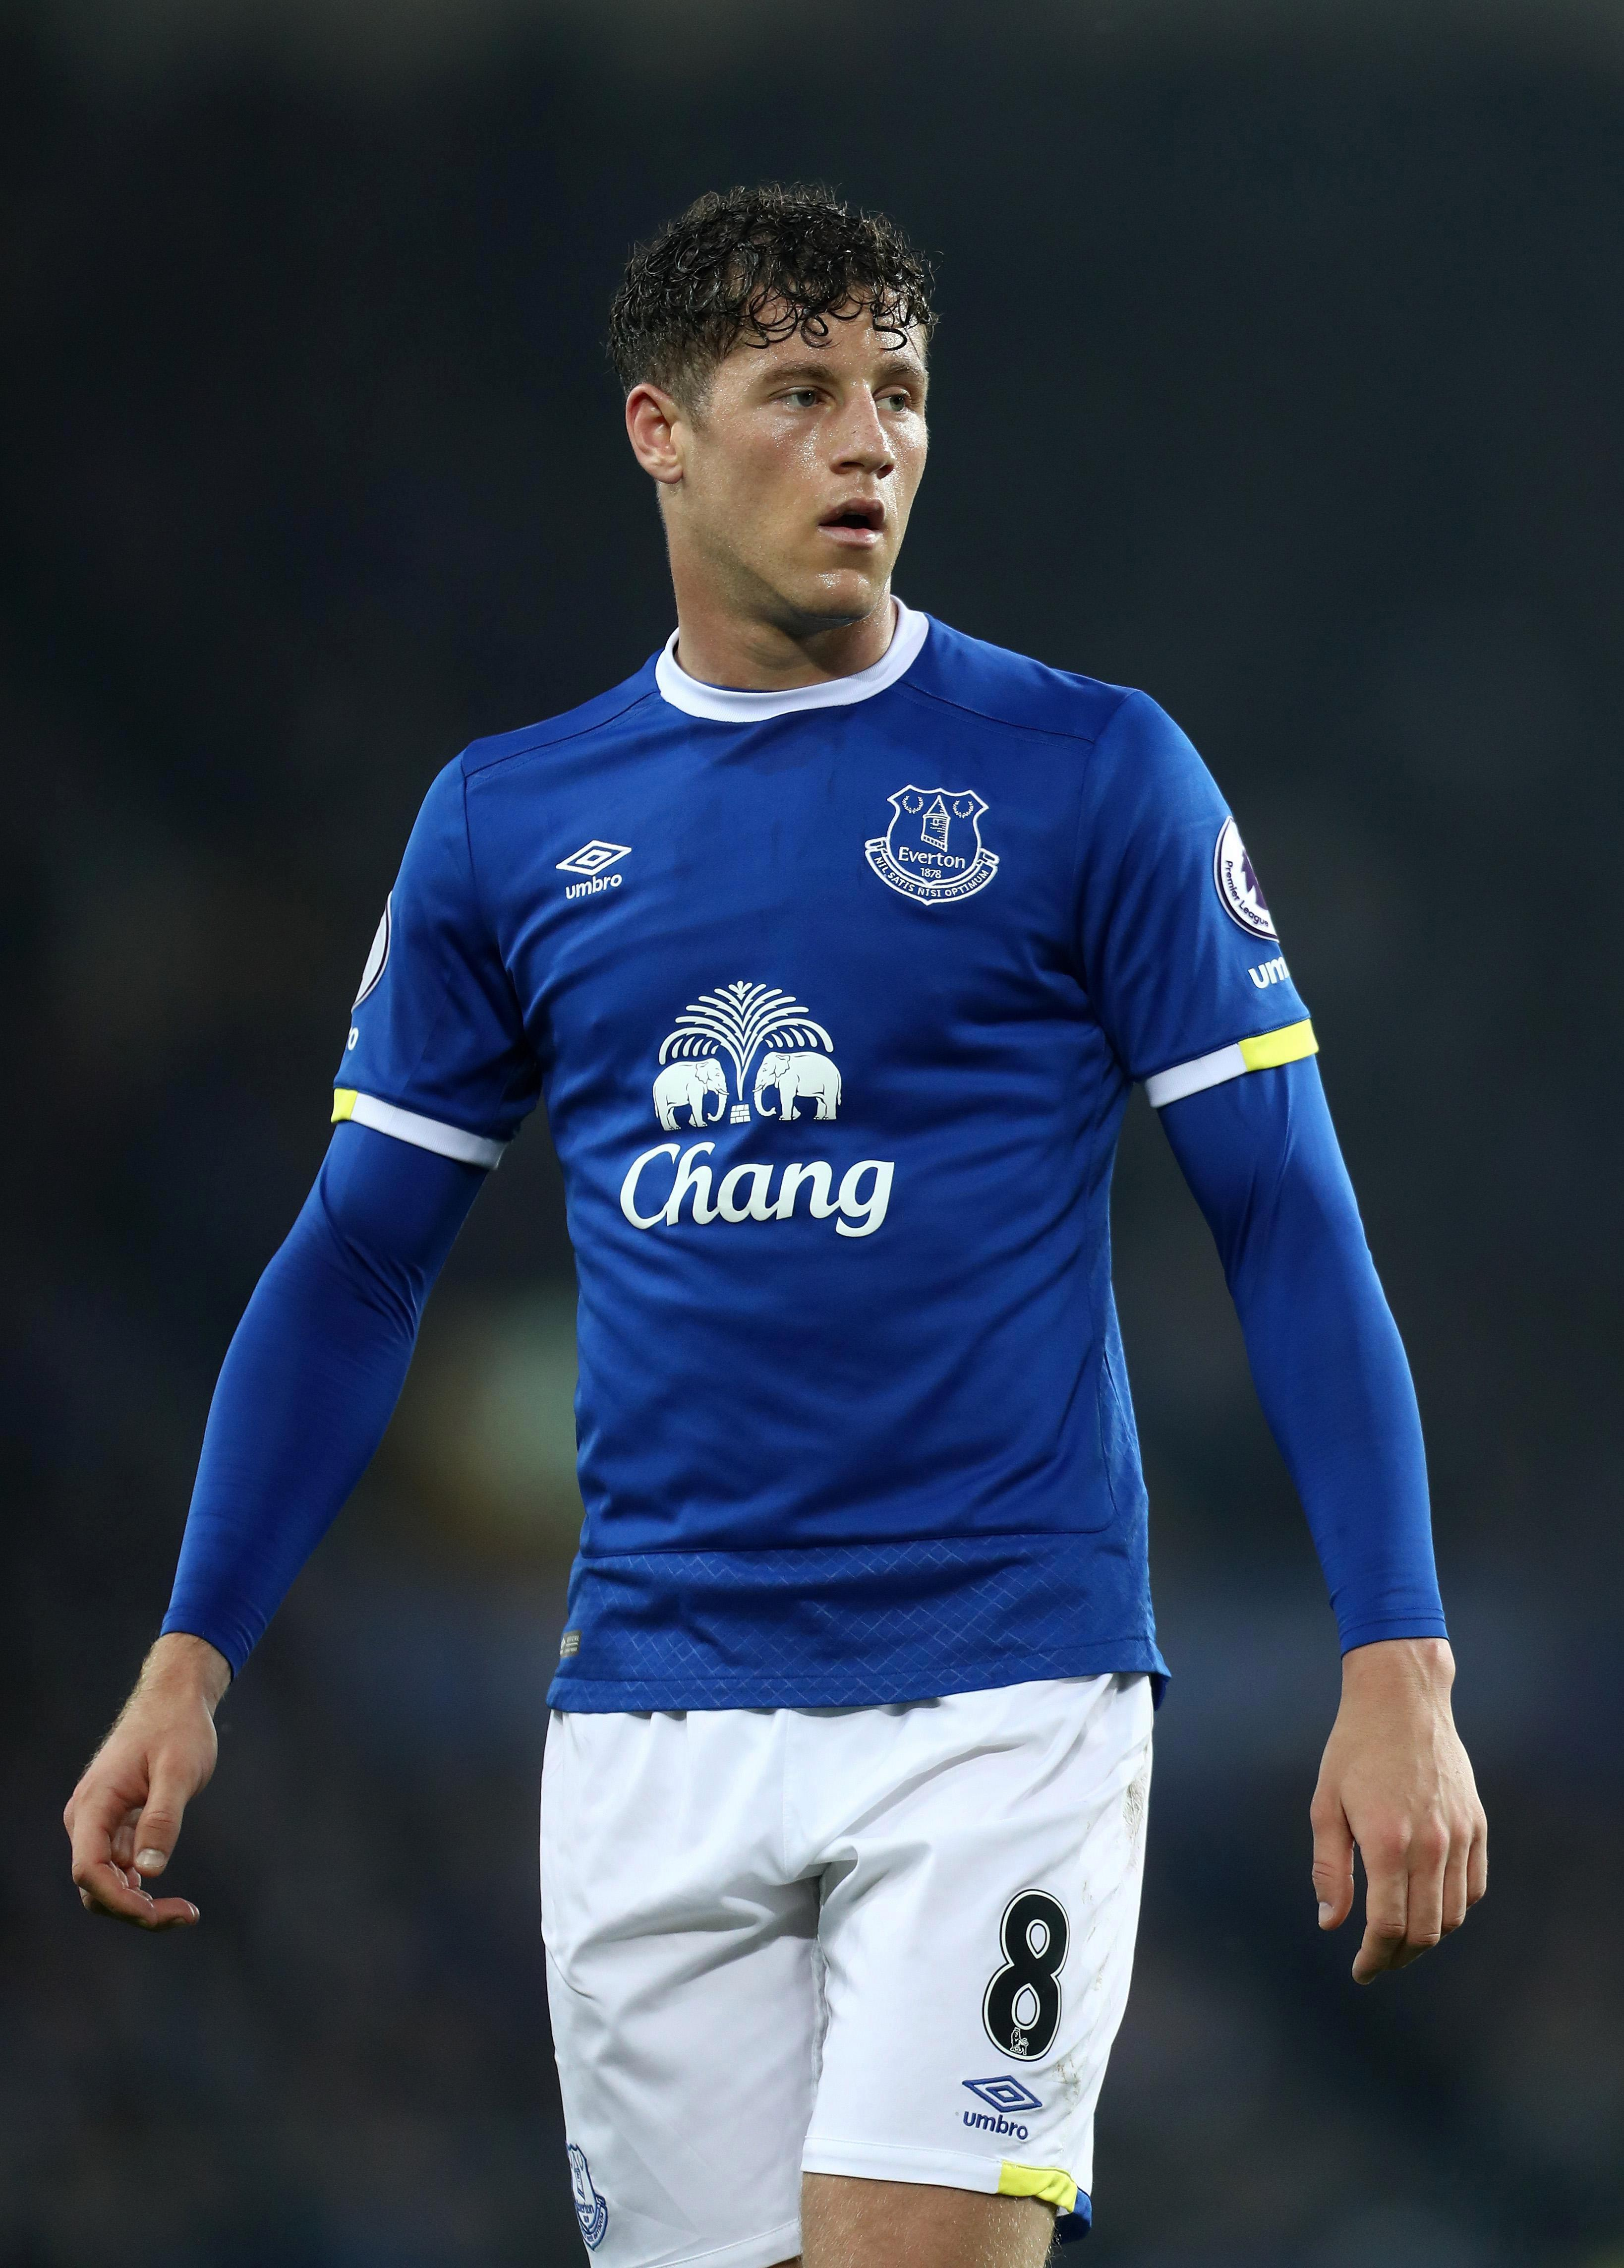 Ross Barkley has tried to force a move away from Everton this summer